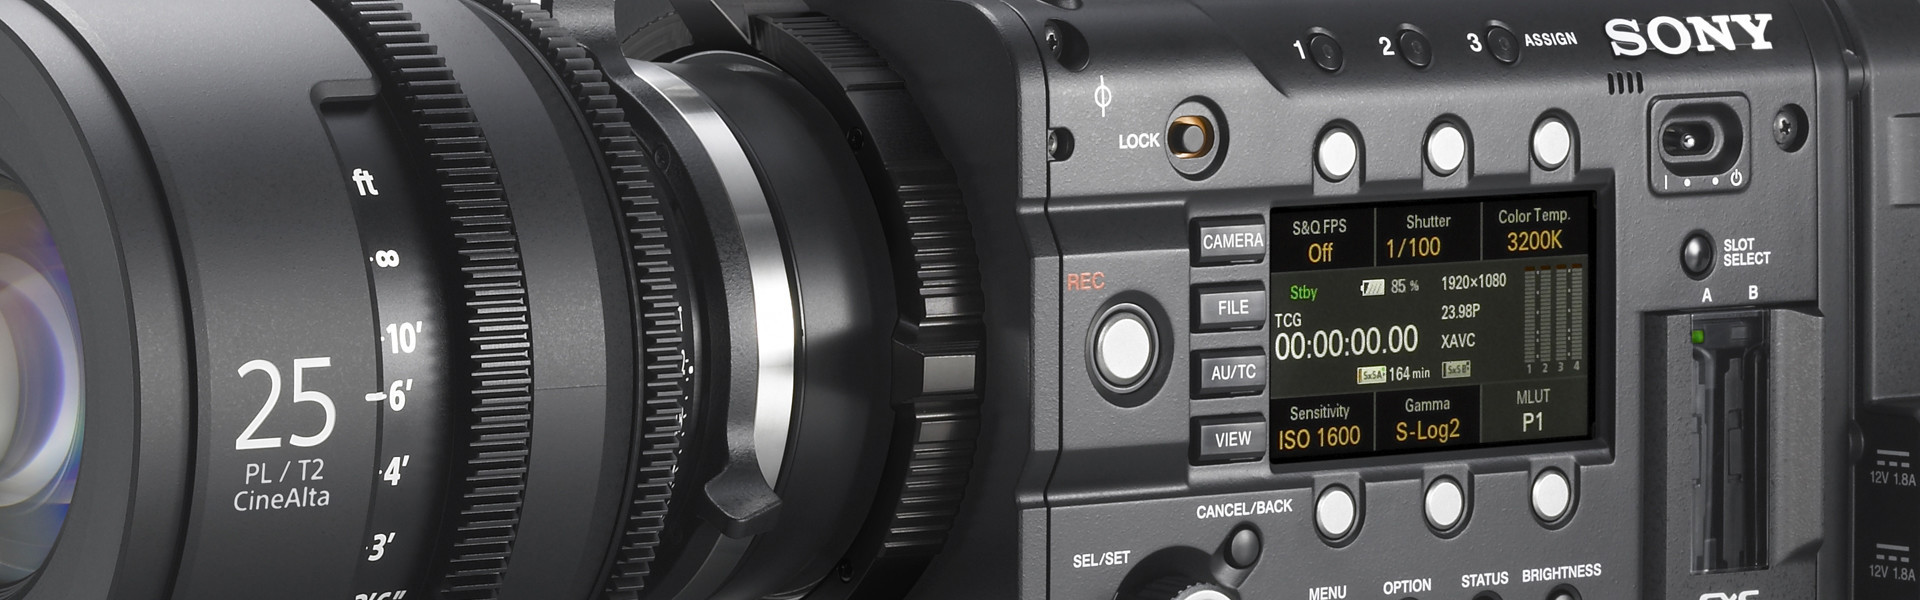 Header image for article Lenses & Accessories for the Sony PMW-F5 & PMW-F55